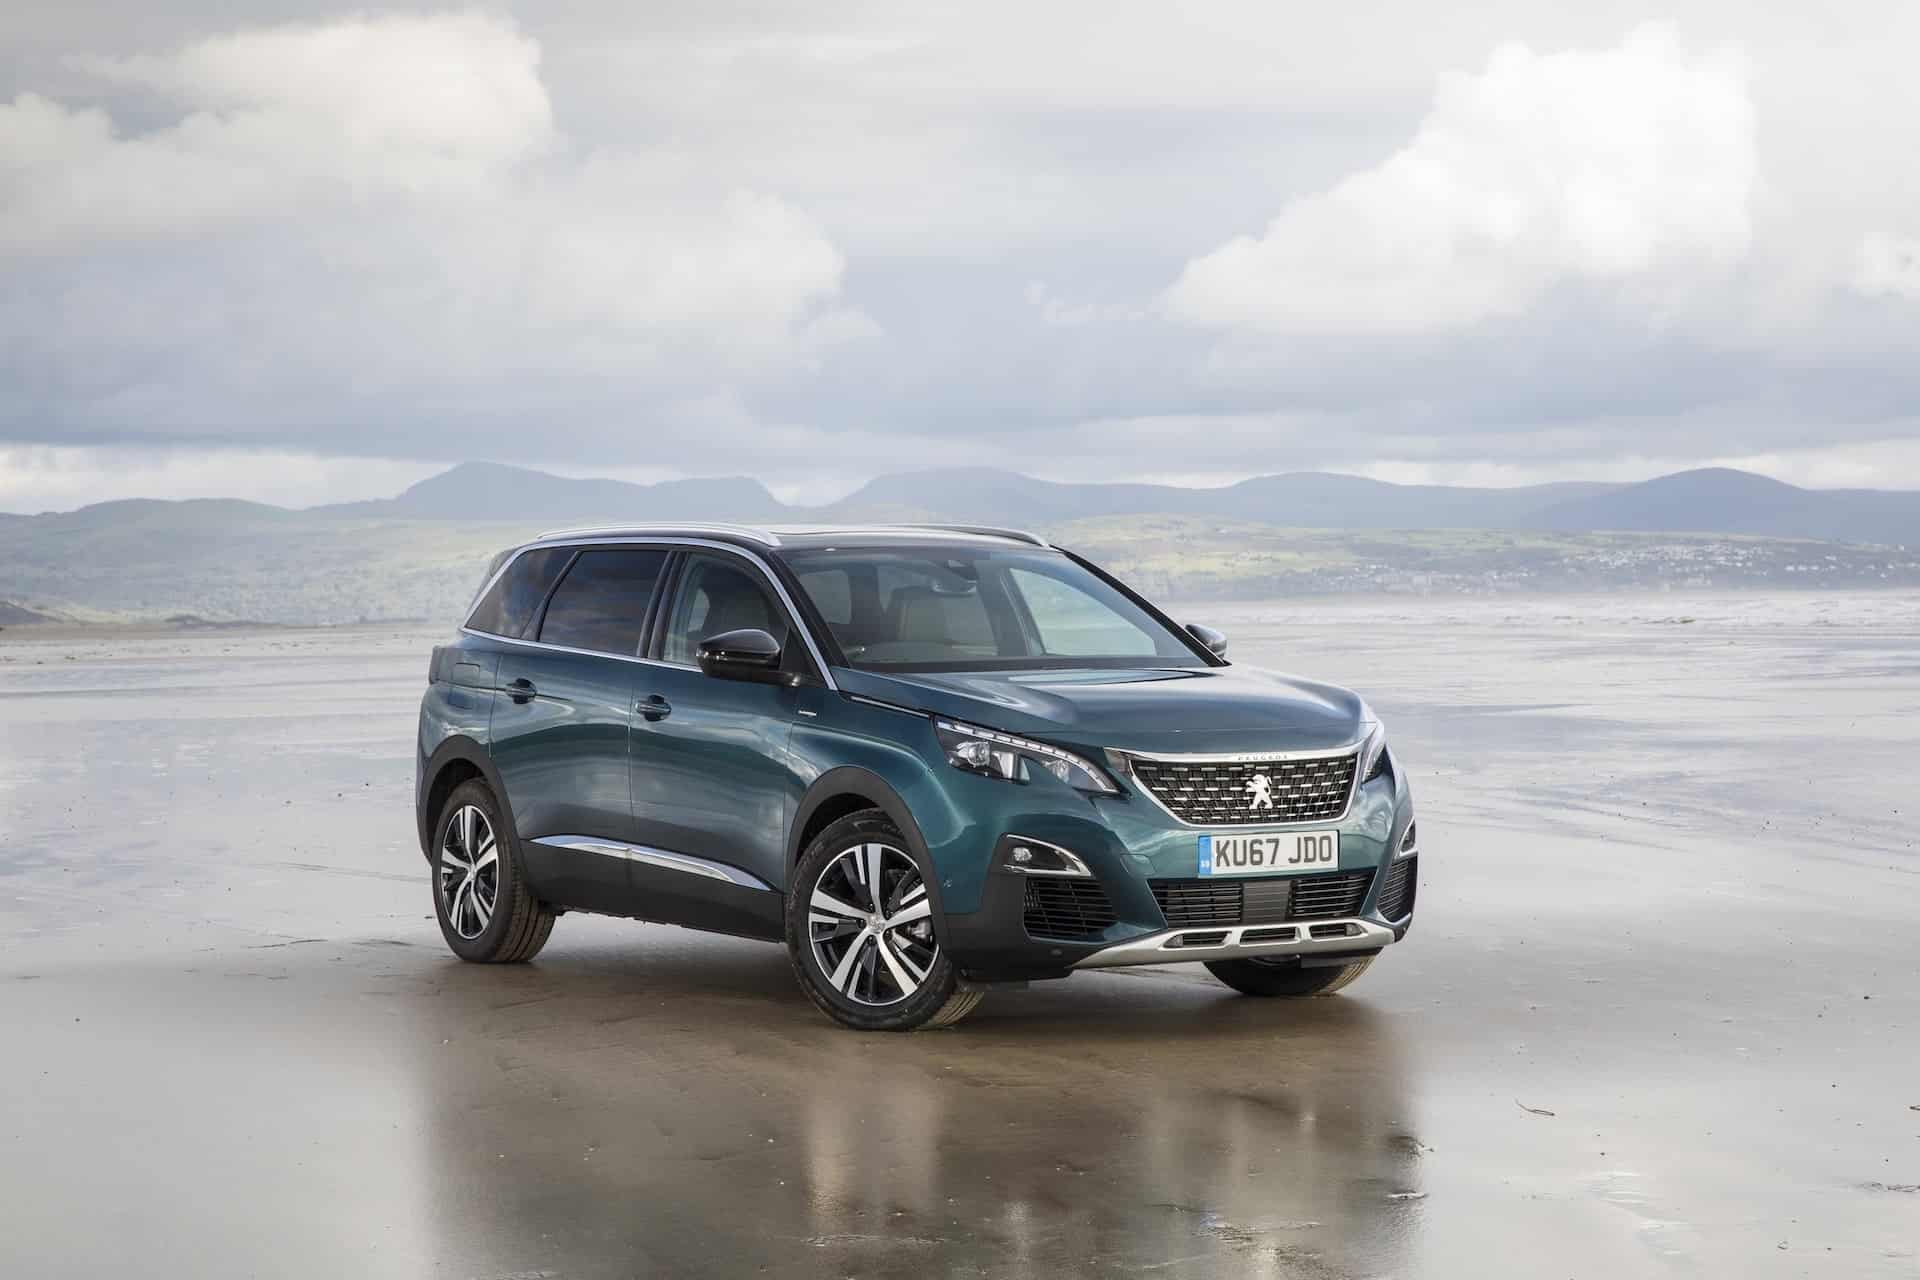 Peugeot 5008 SUV first drive review (The Car Expert)